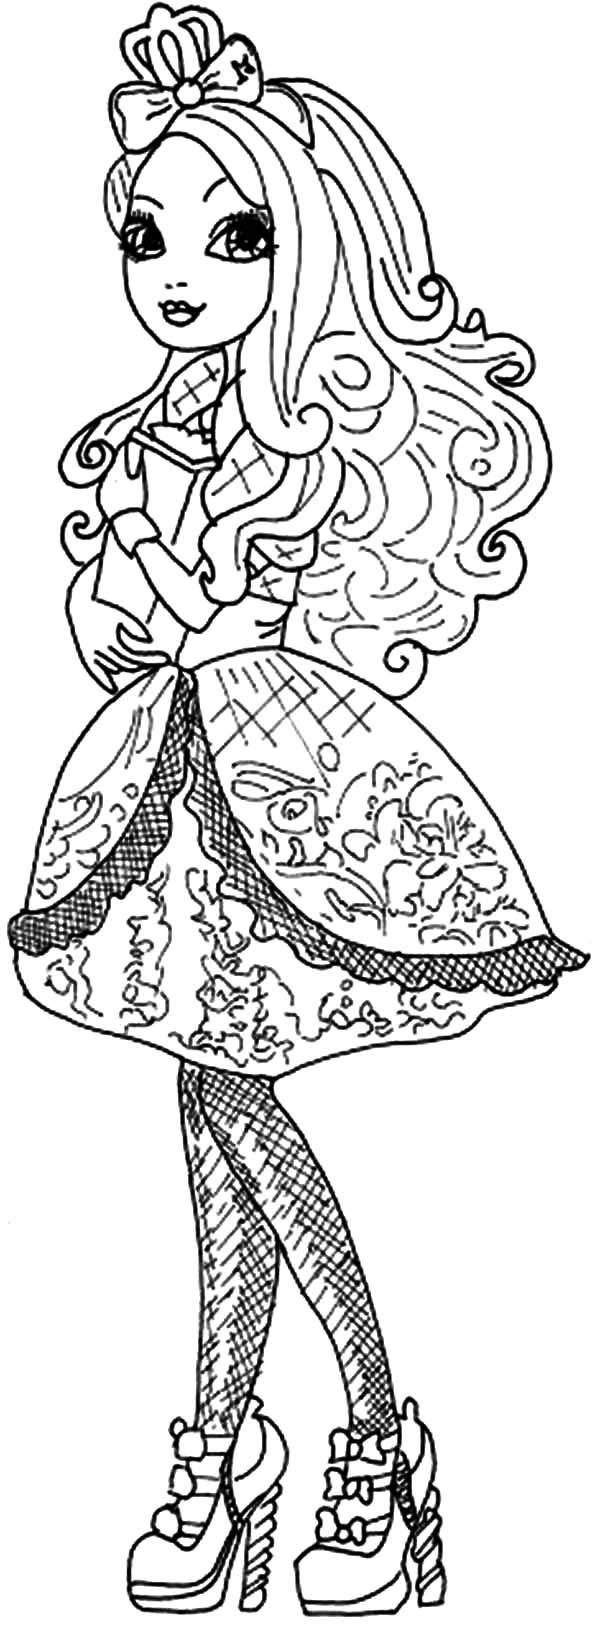 download online coloring pages for free part 10